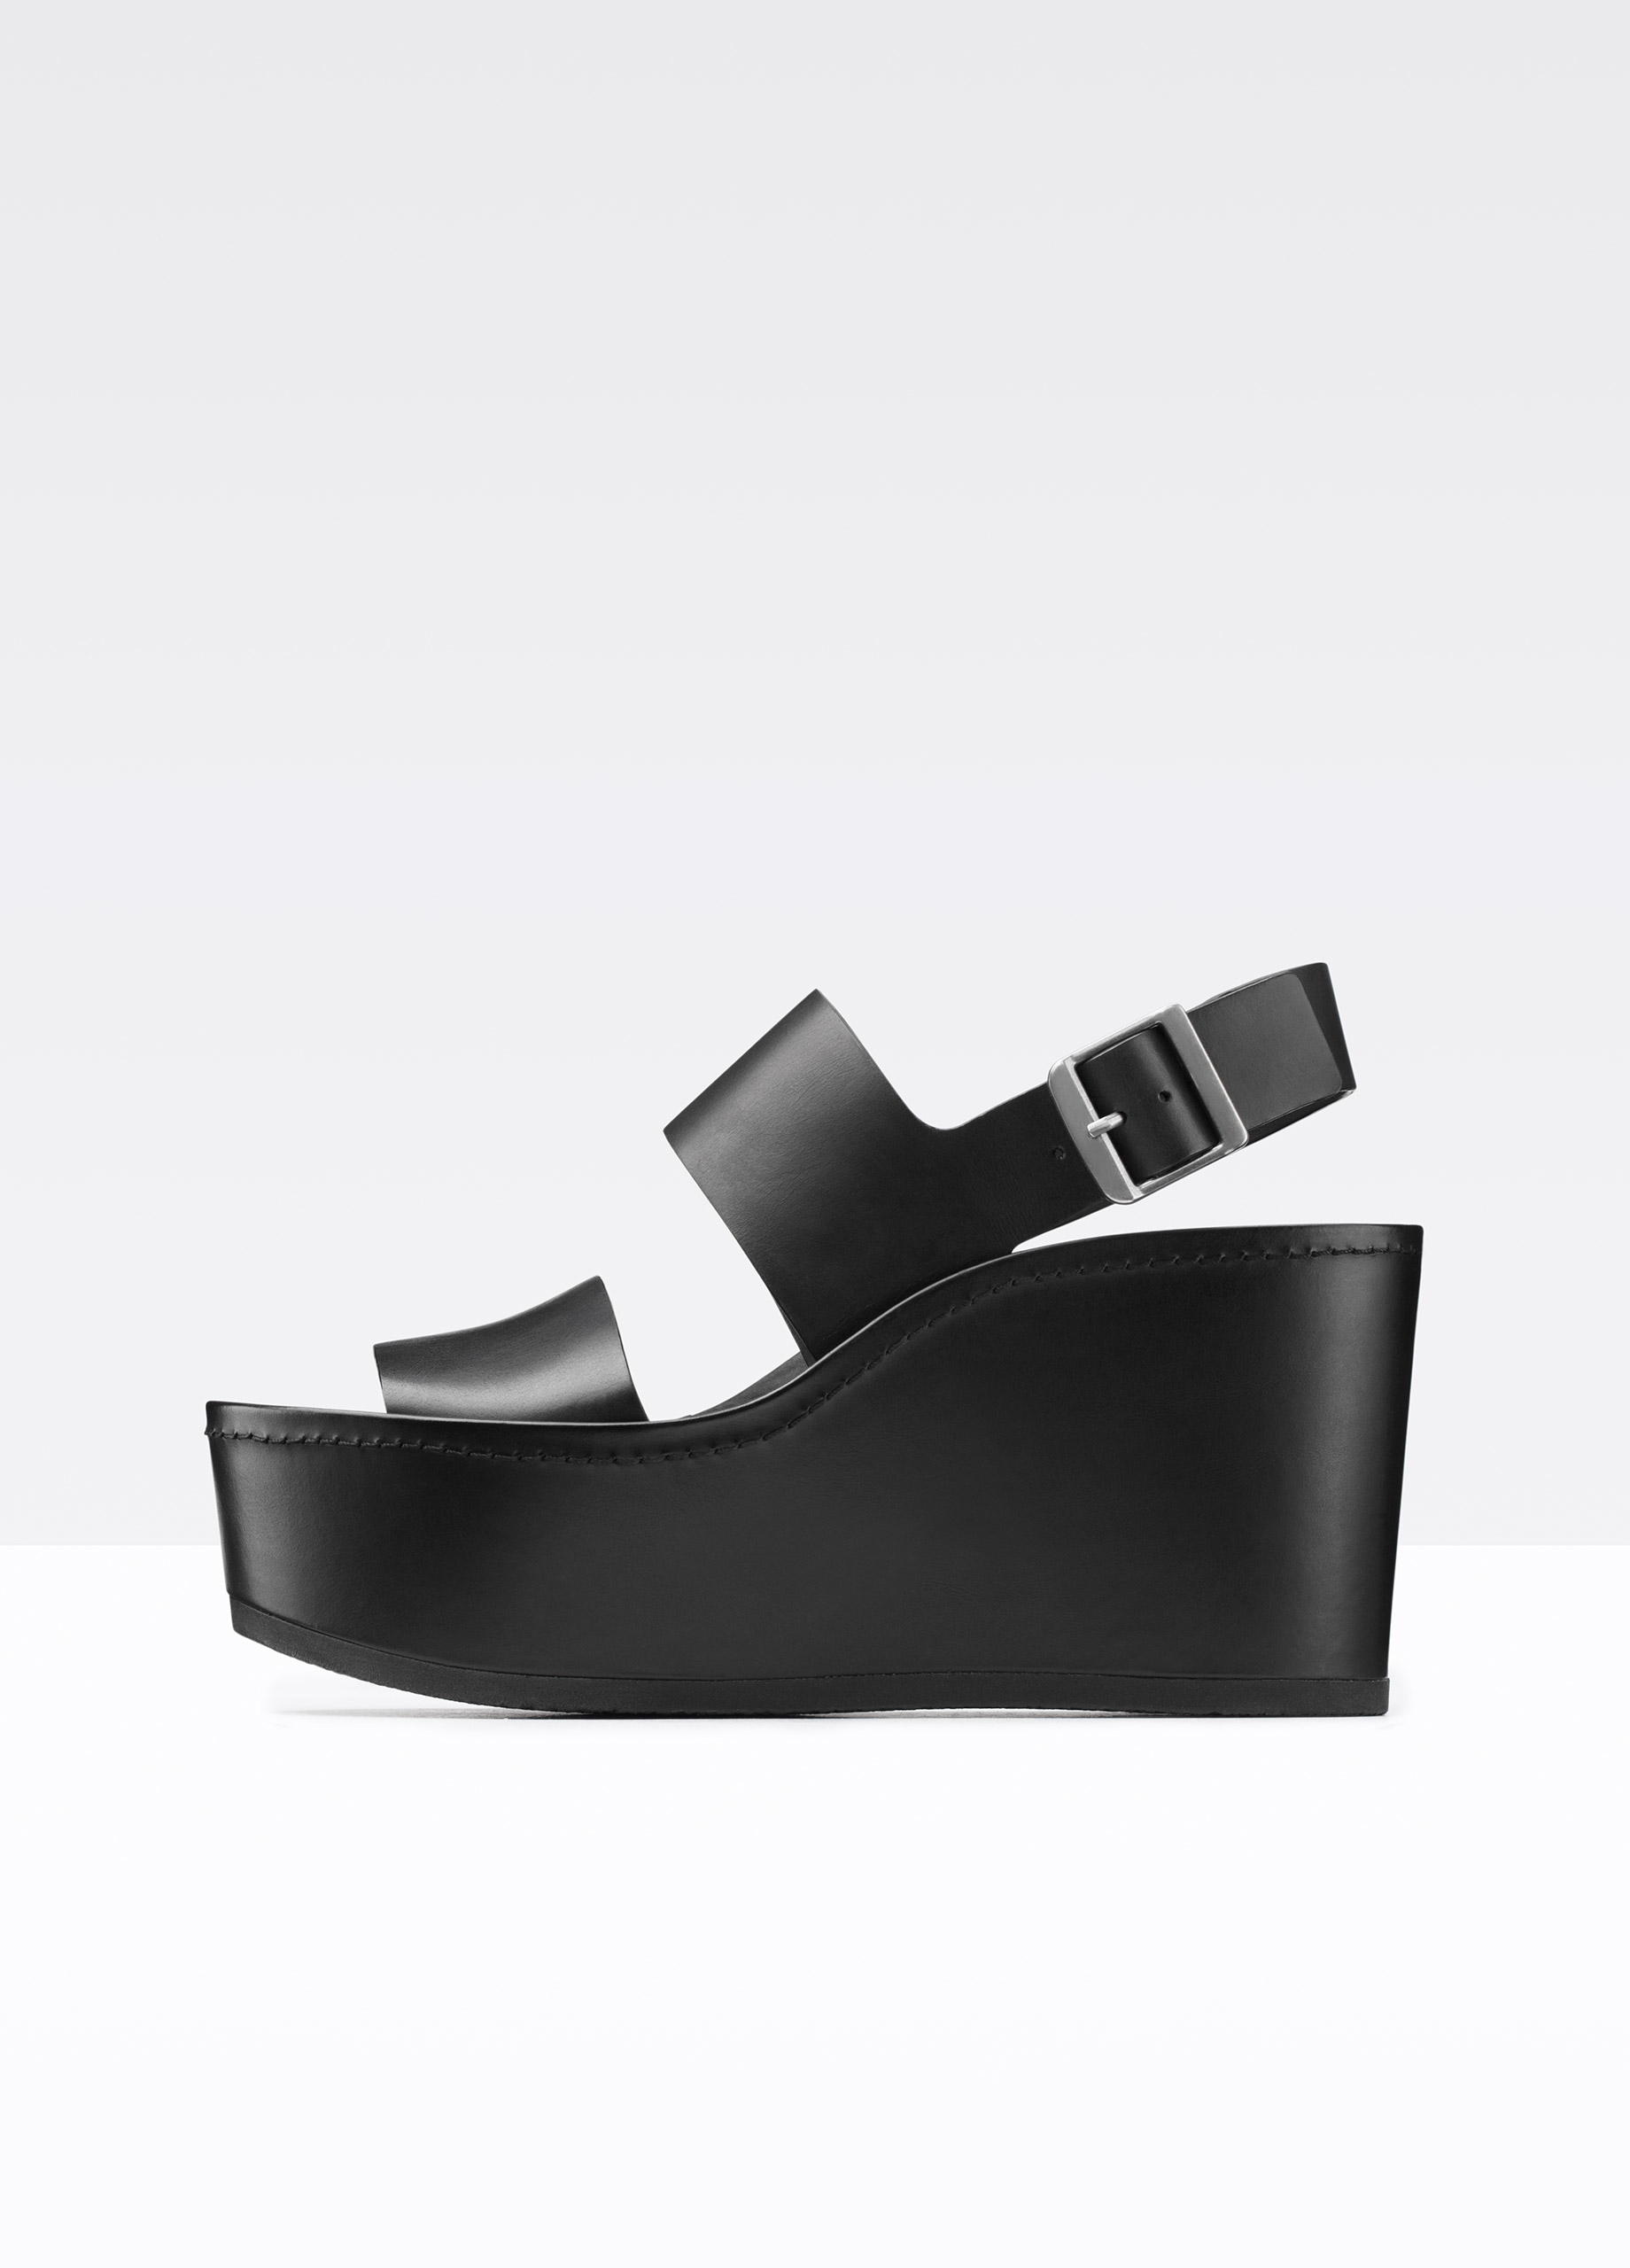 579f808513c Vince Idalia Leather Platform Sandal in Black - Lyst